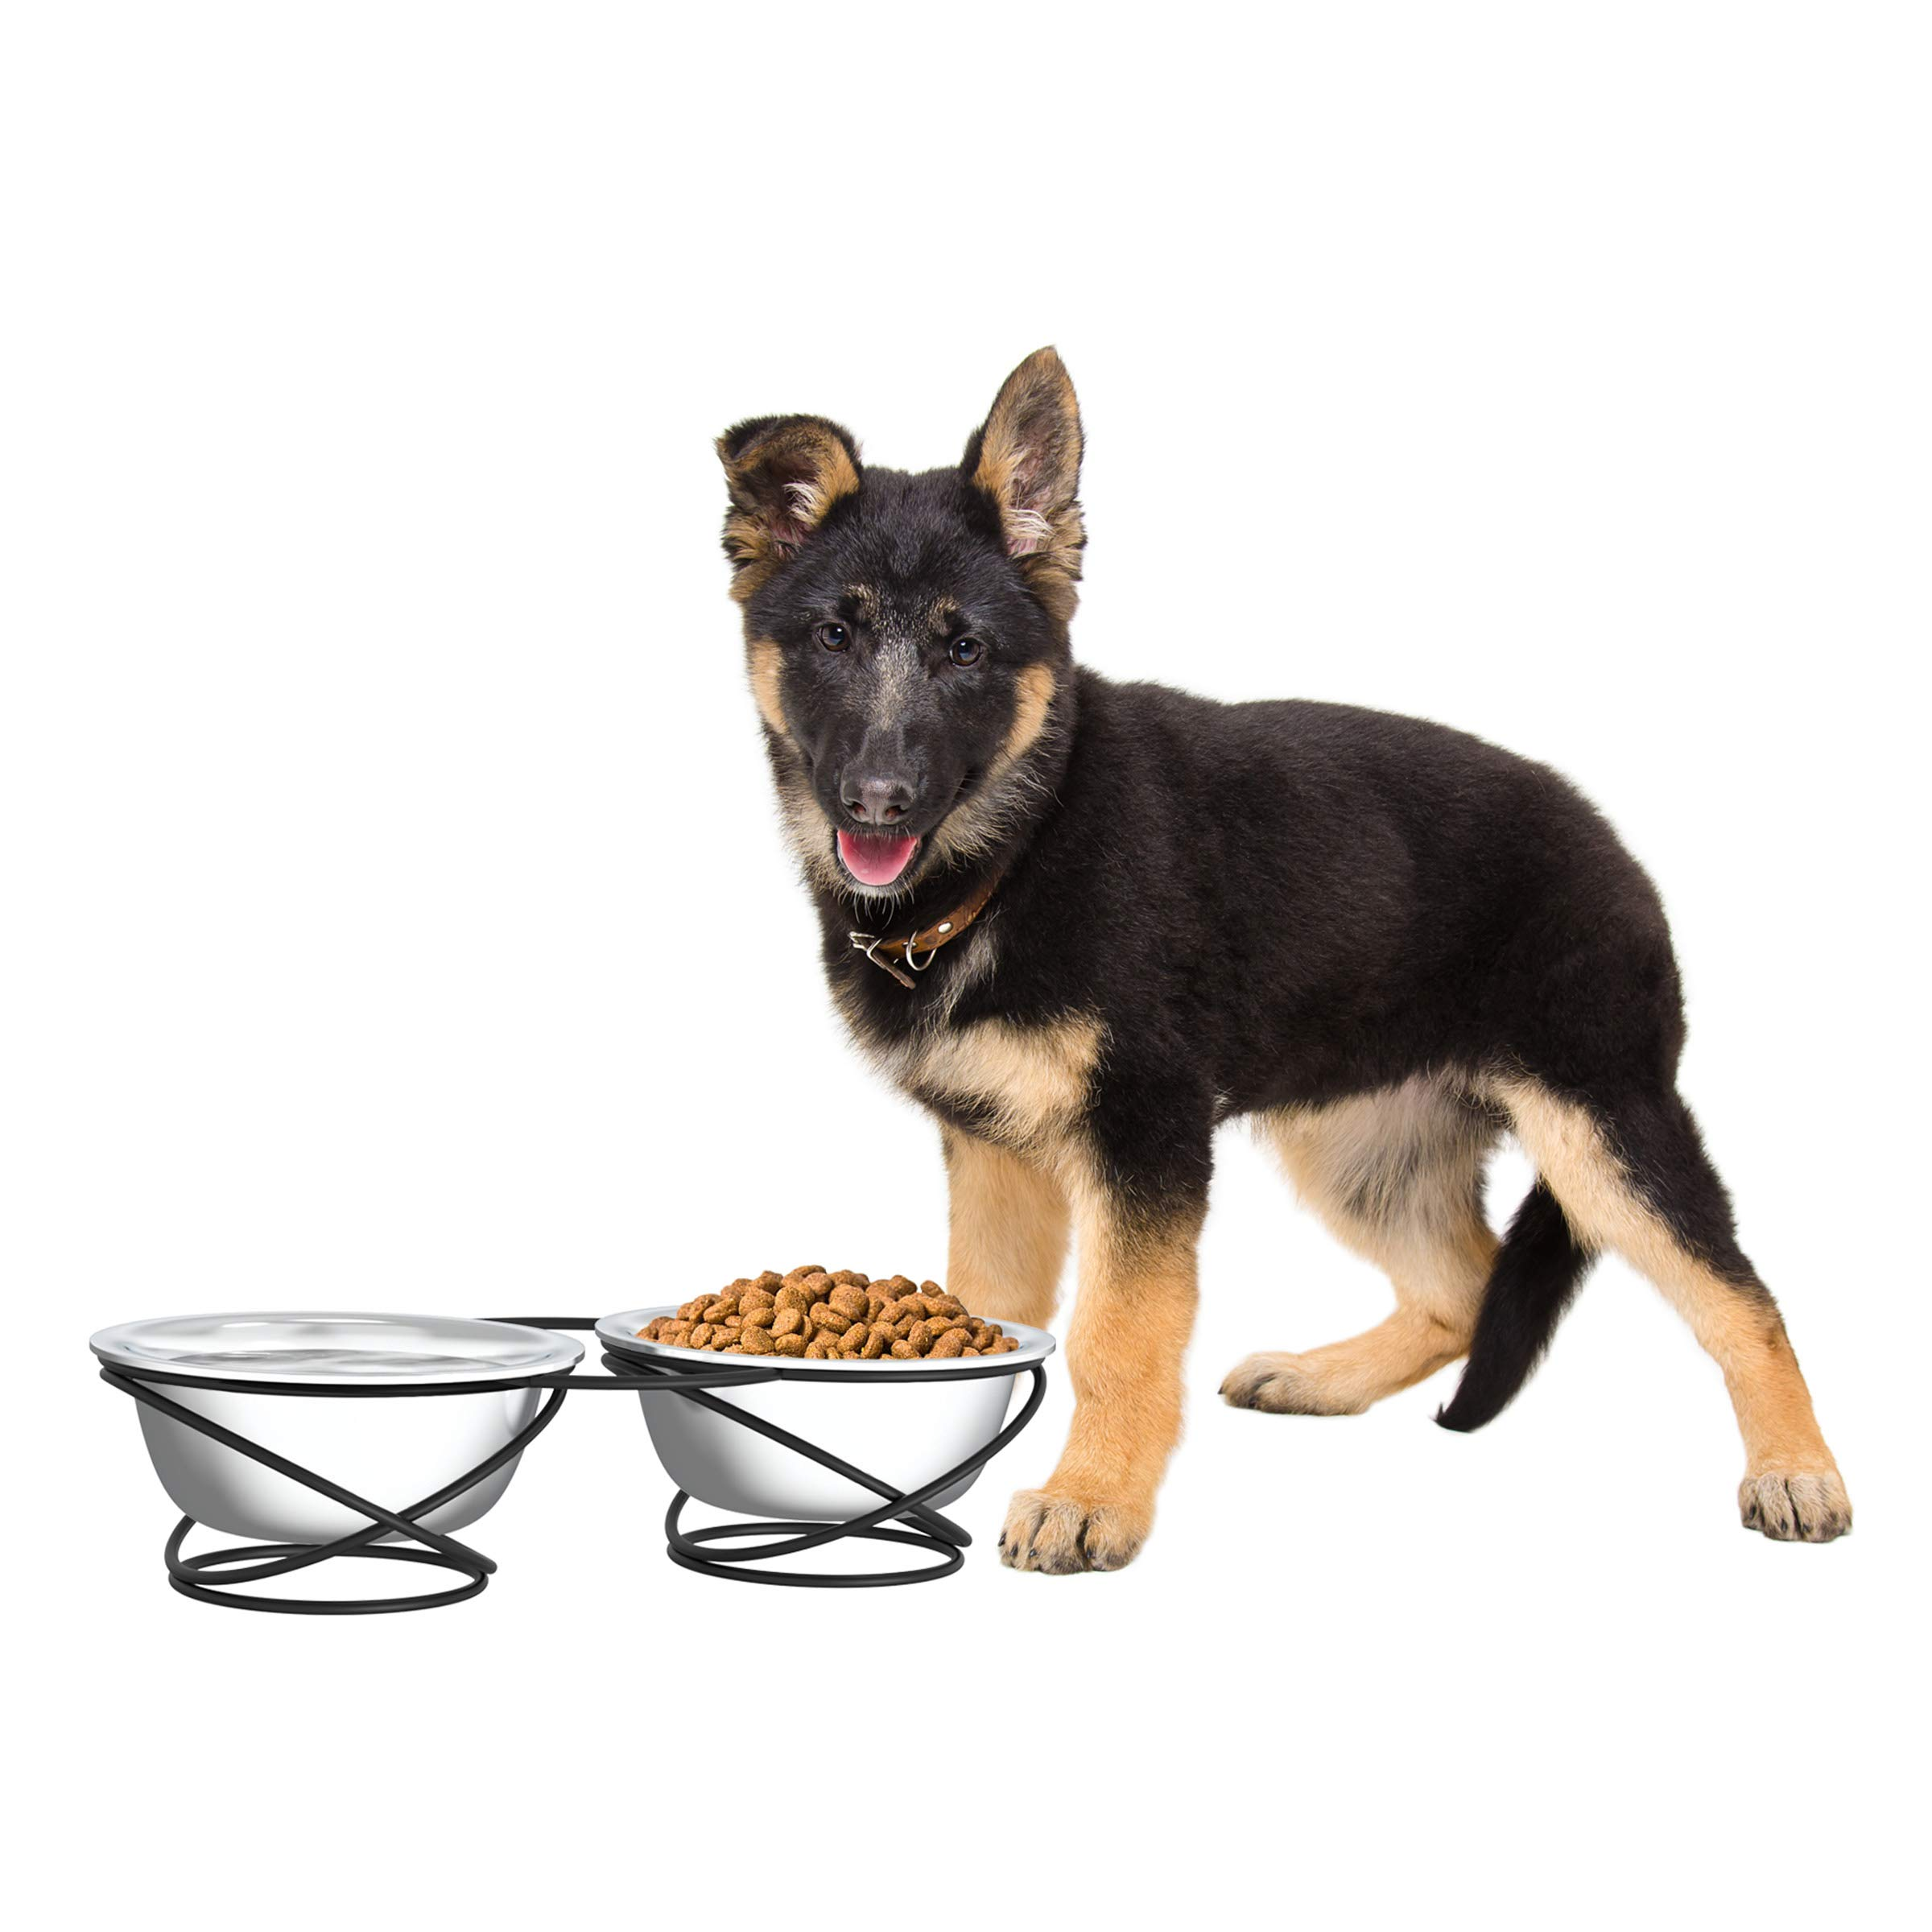 PETMAKER Stainless Steel Raised Food & Water Bowls with Decorative 3.5'' Tall Stand for Dogs & Cats-2 Bowls, 40oz Each-Elevated Feeding Station by PETMAKER